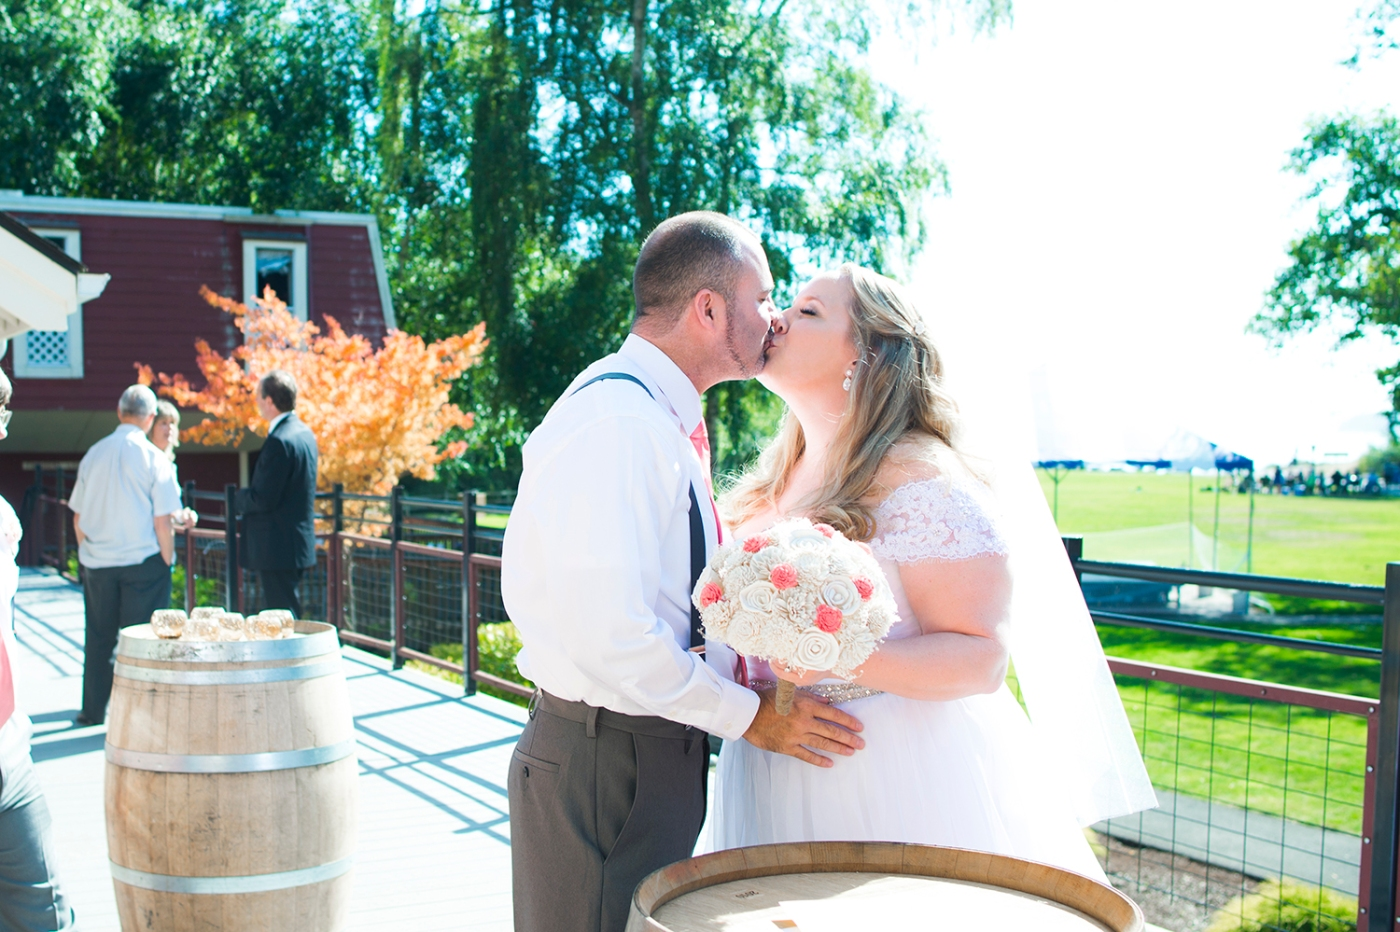 Jane_S_photography_Katie_and_Steve_2016_Des_Moines_Marina_Wedding_DSC_1784